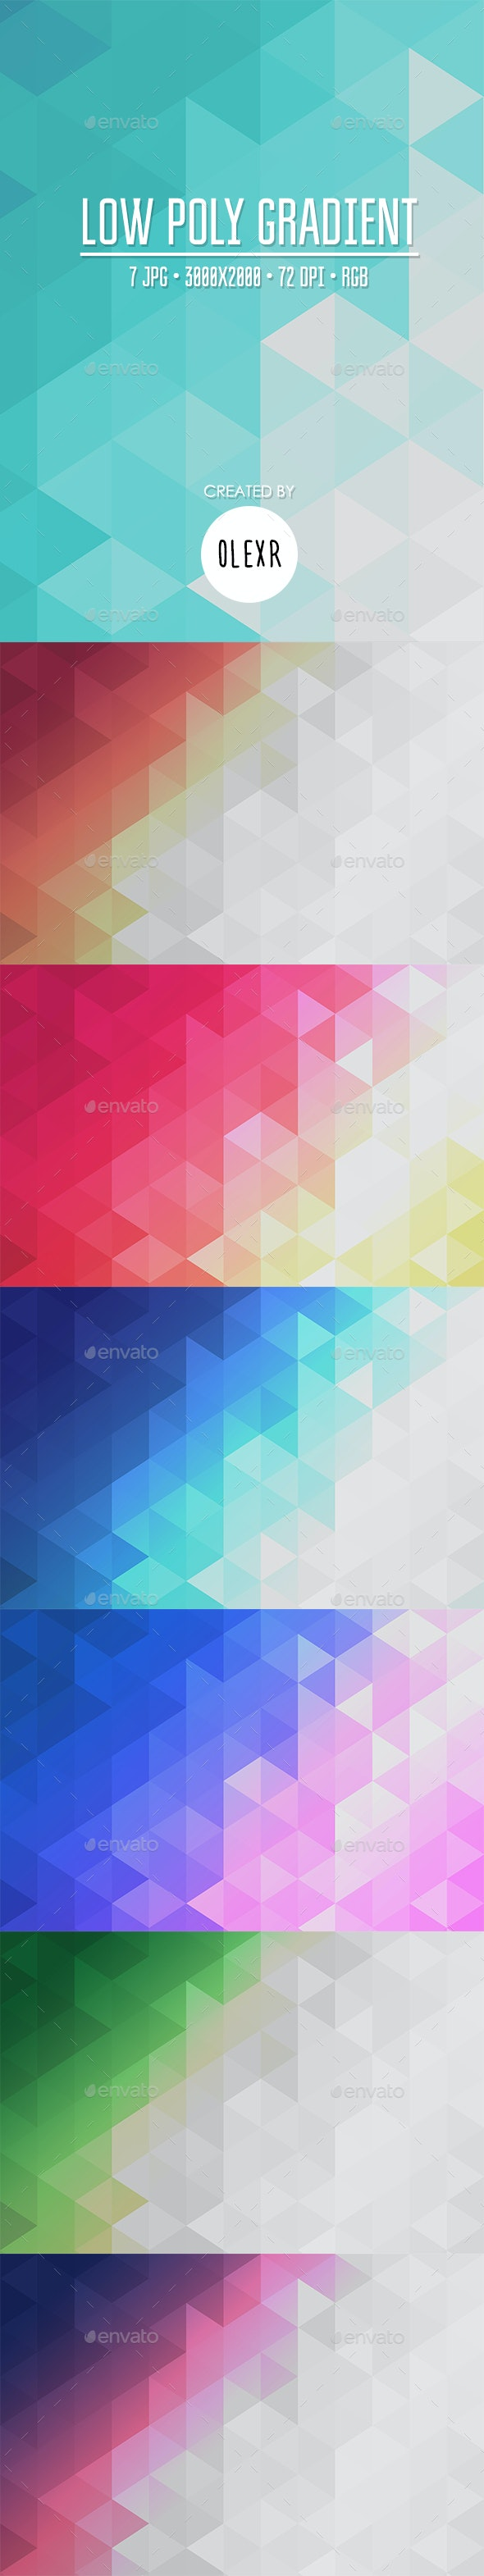 Low Poly Gradient Backgrounds - Abstract Backgrounds